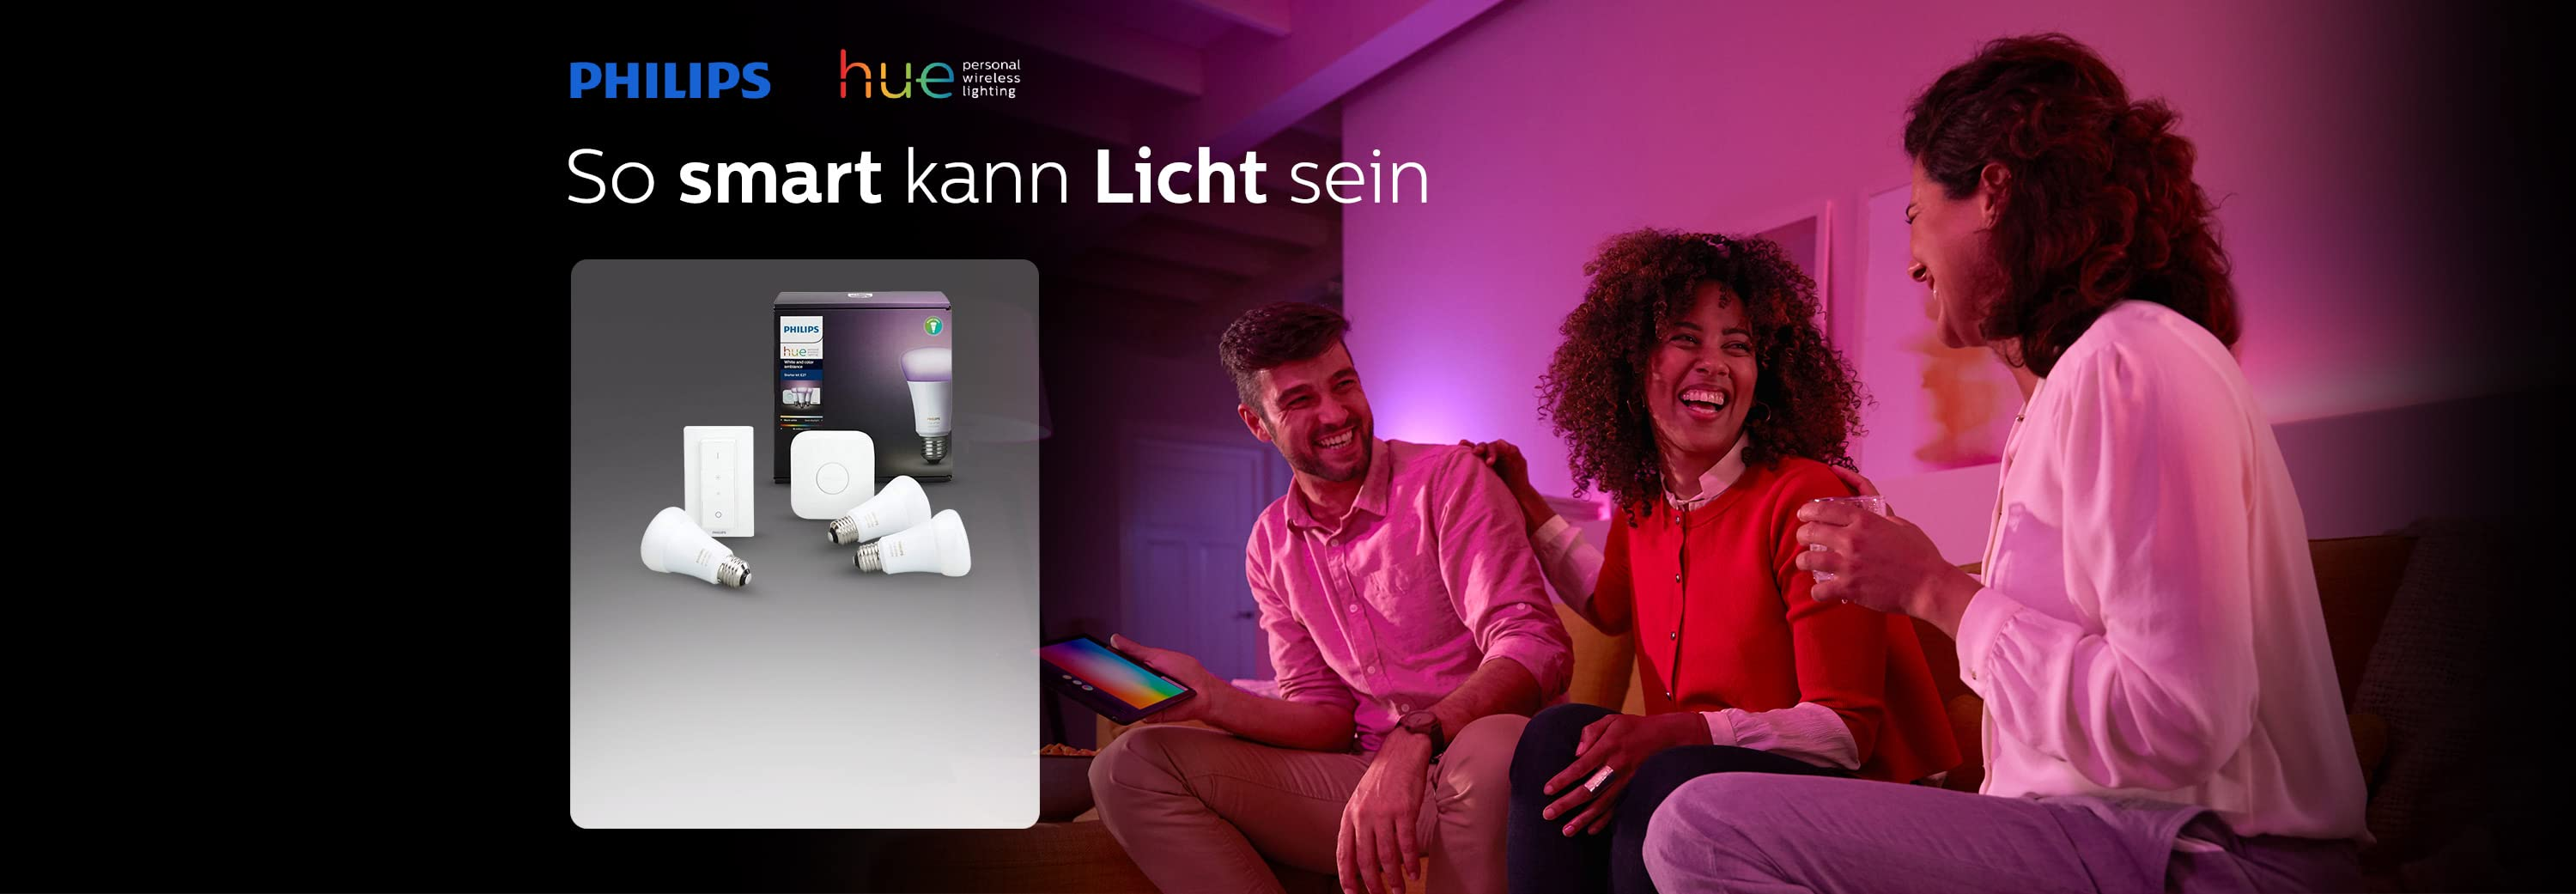 Philips Hue Hero.